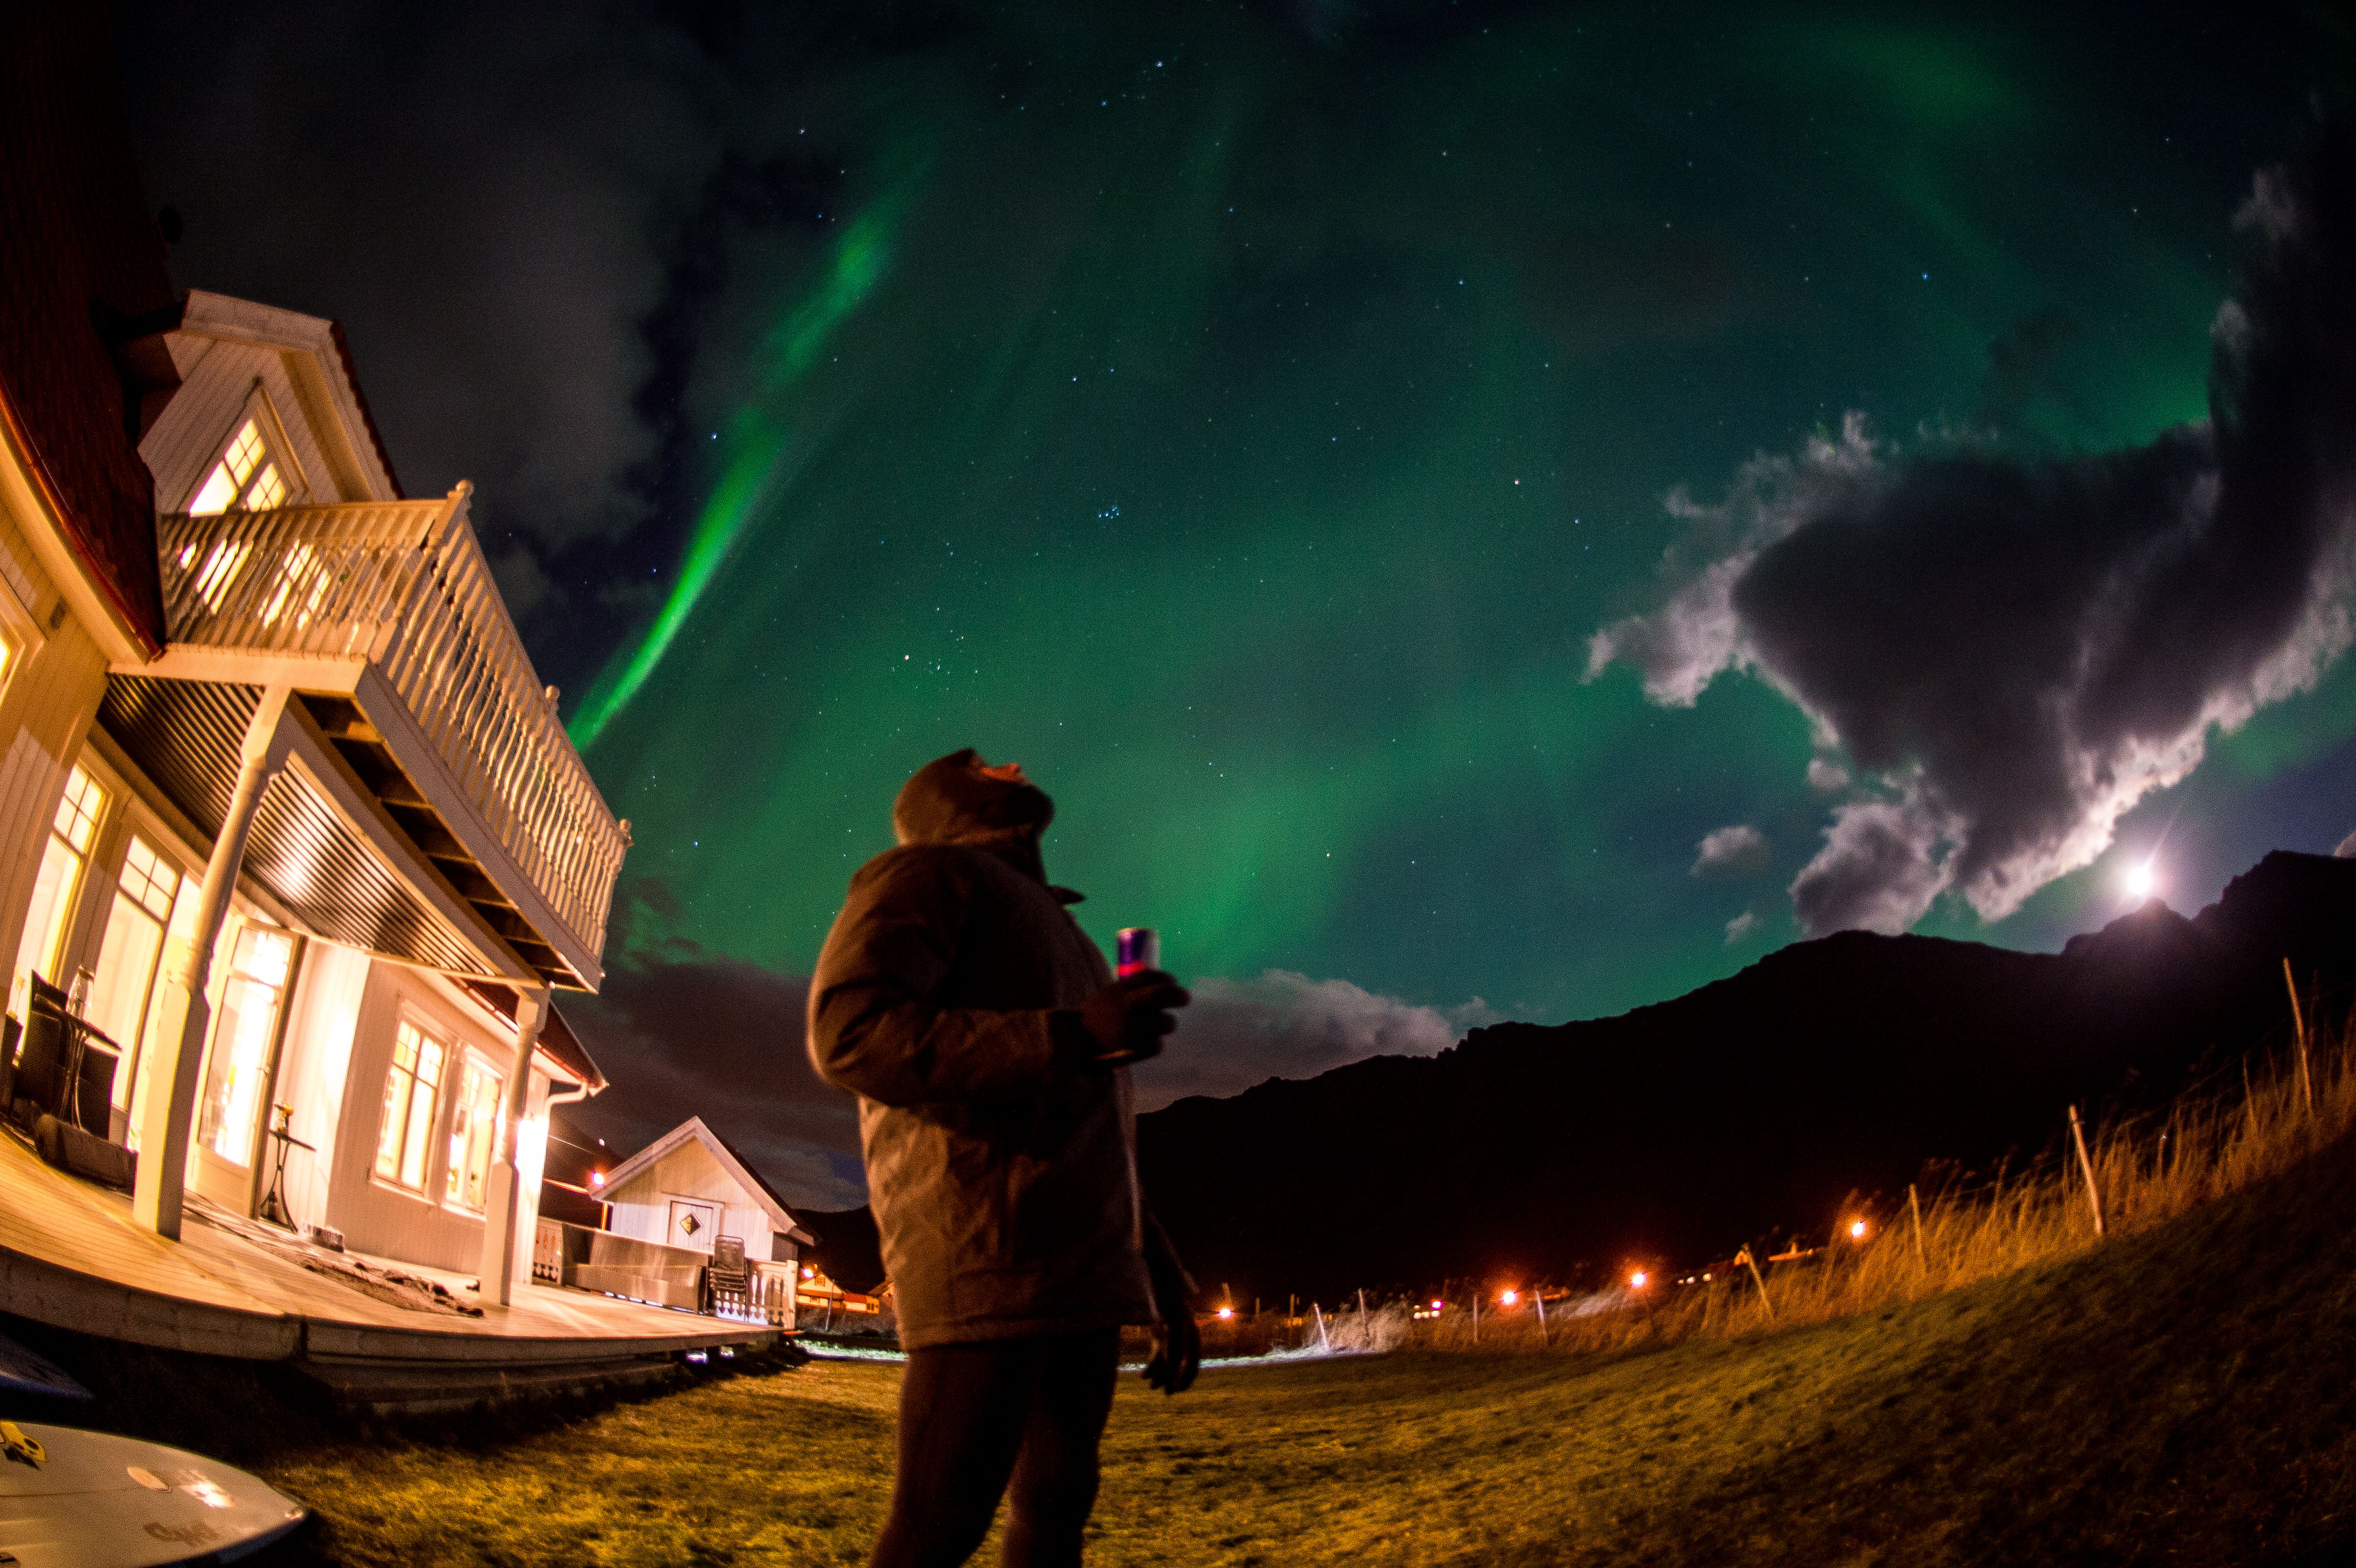 Mick Fanning is looking into the colorful night in Lofoten, Norway on Nov. 10, 2016.  (Trevor Moran / Red Bull Content Pool)